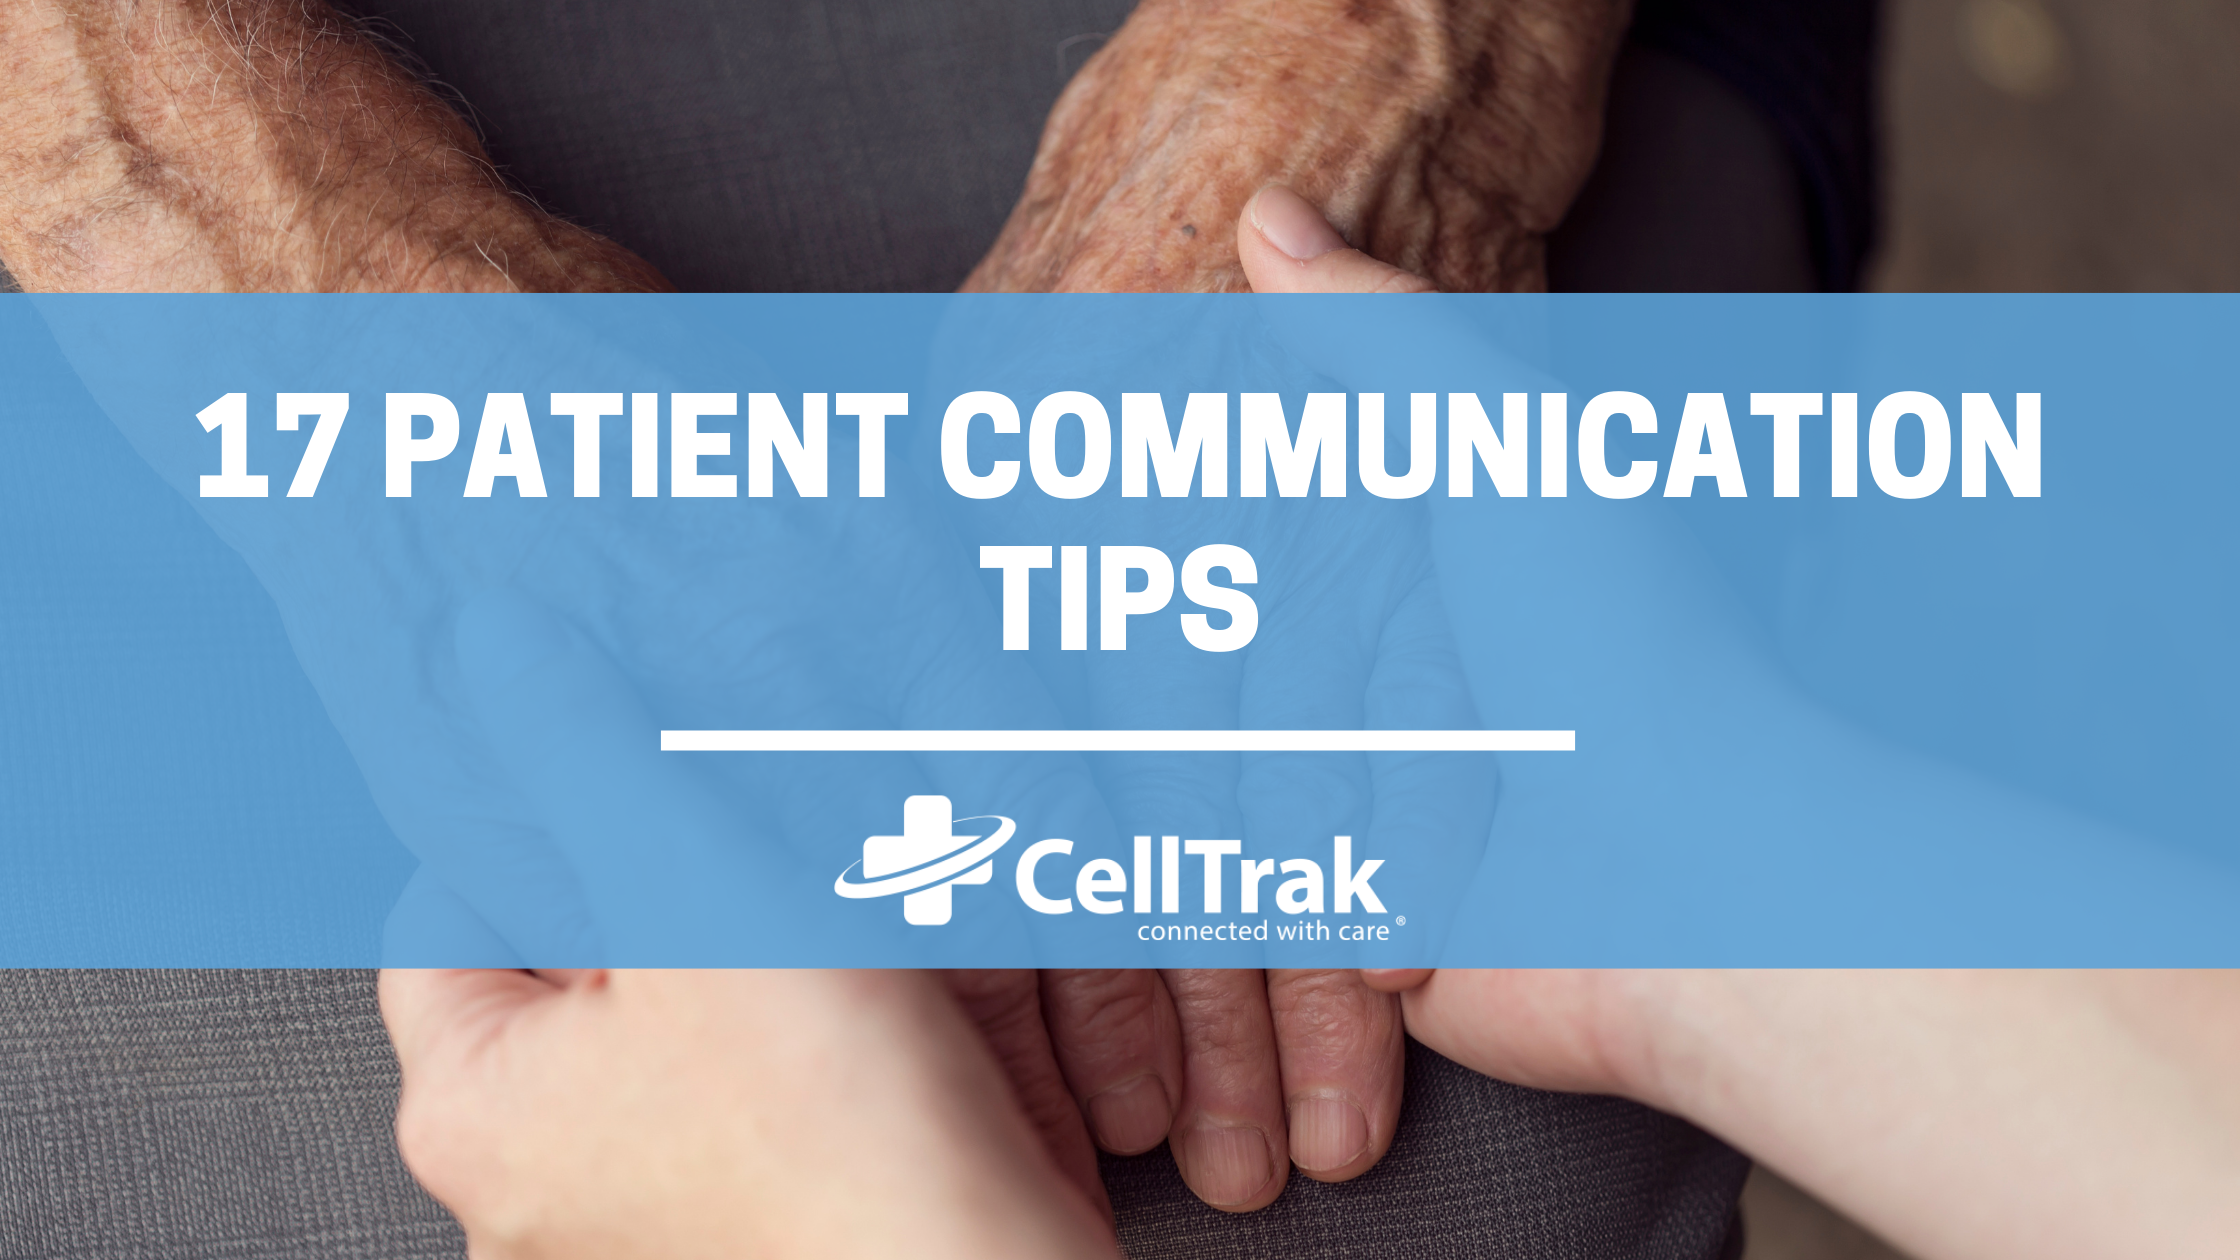 17 tips for patient communication